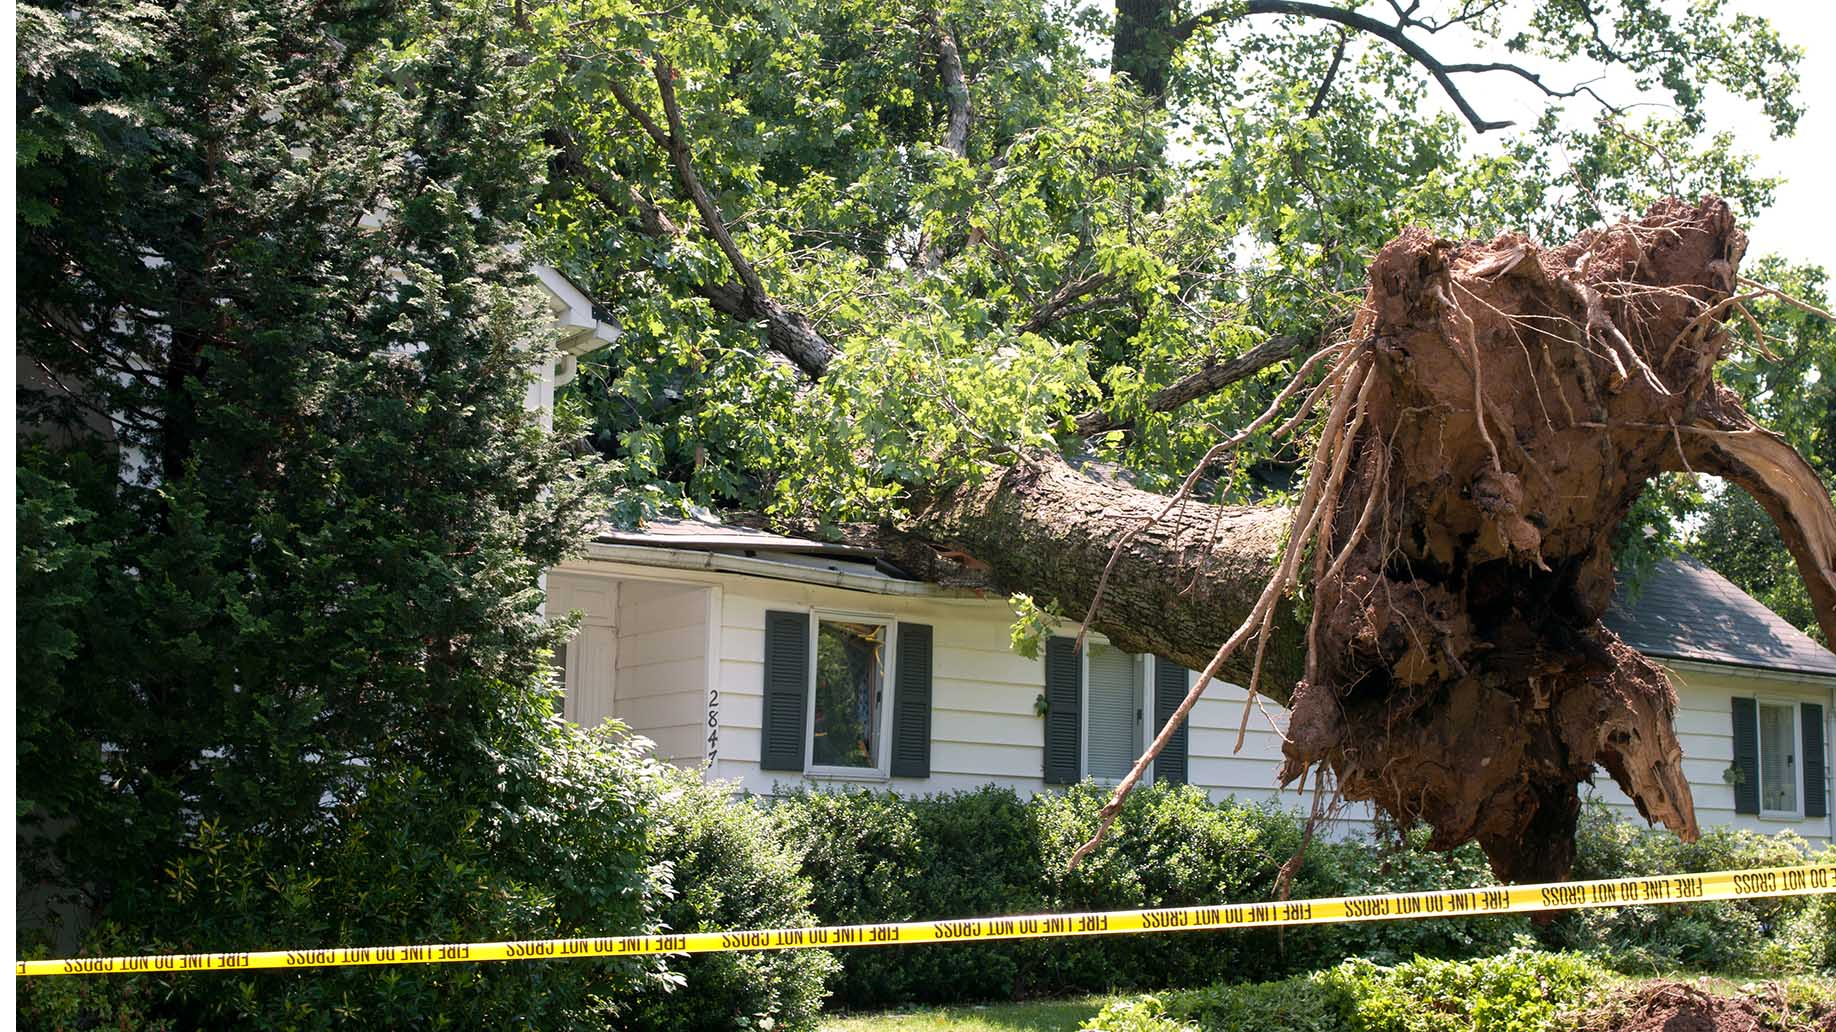 Uprooted Tree Fell On House After